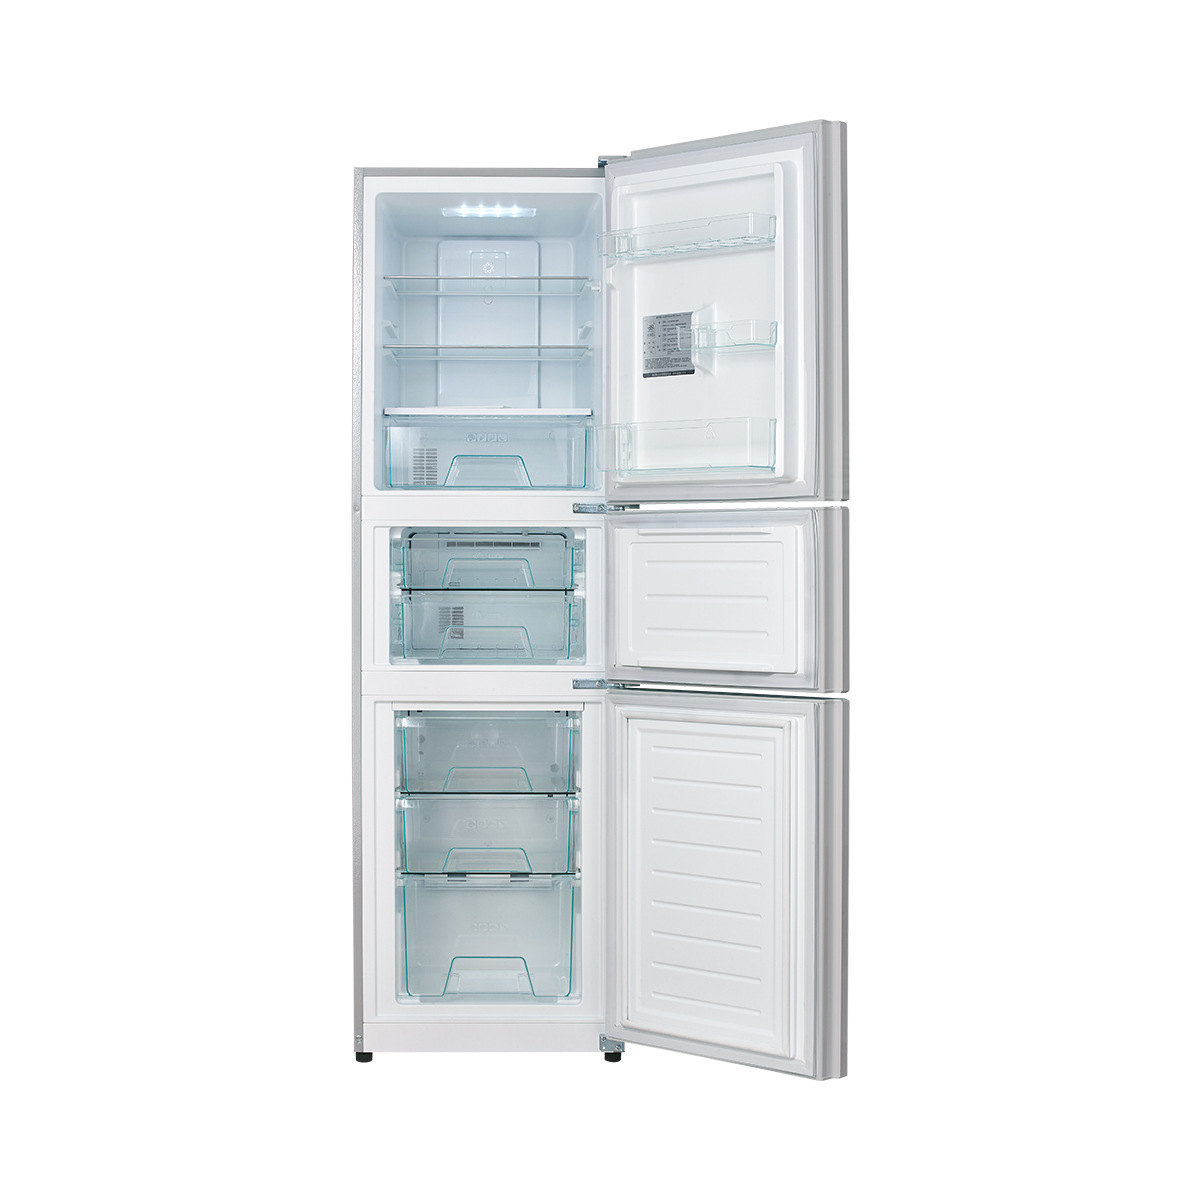 Tủ lạnh  Midea/ beautiful BCD-246WTM (E) three door refrigerator door open refrigerator air-cooled